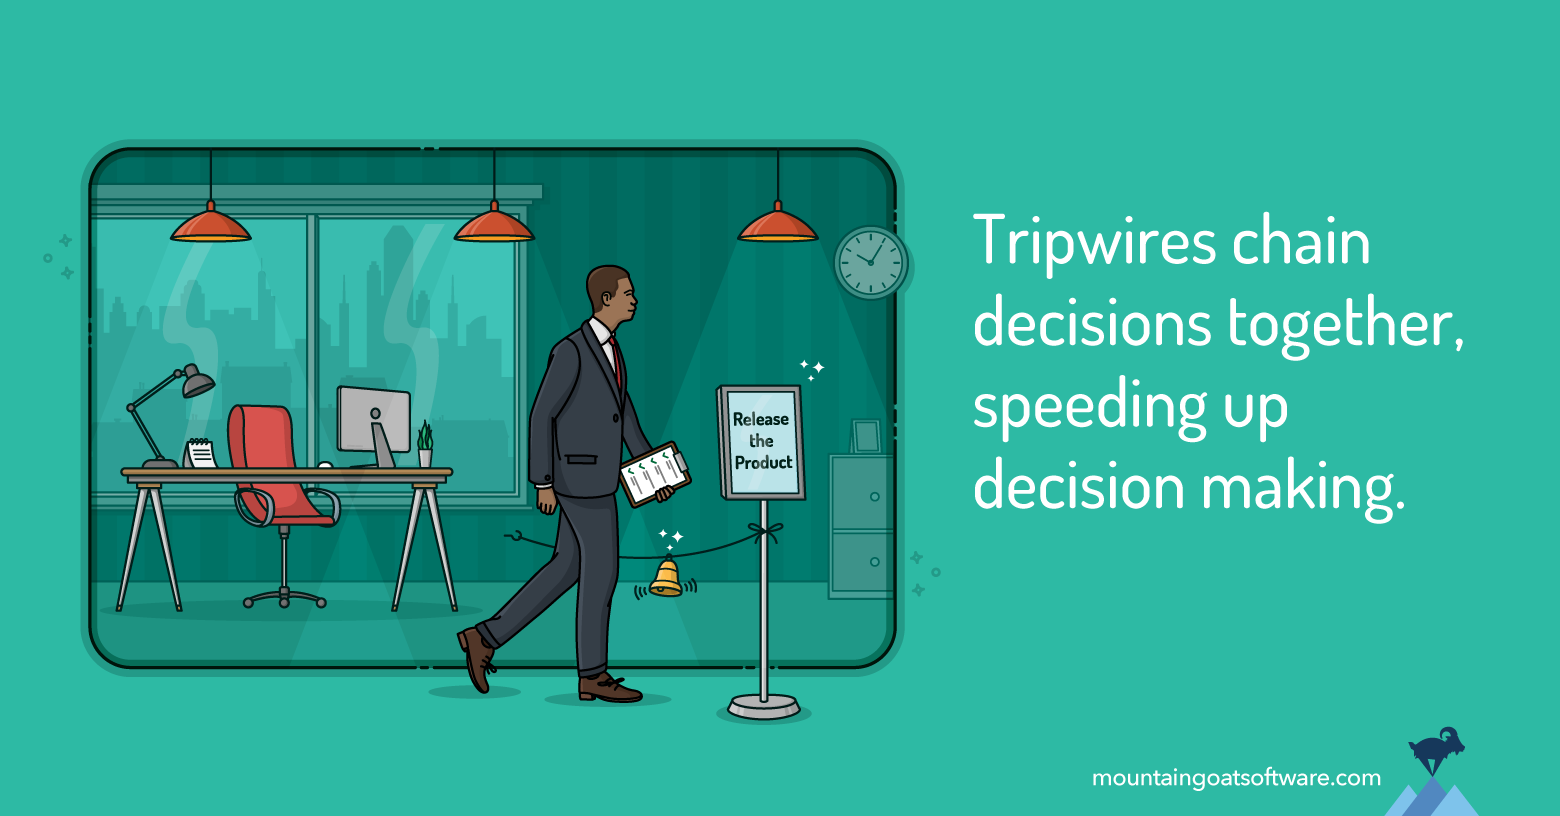 Using Tripwires when Making Decisions